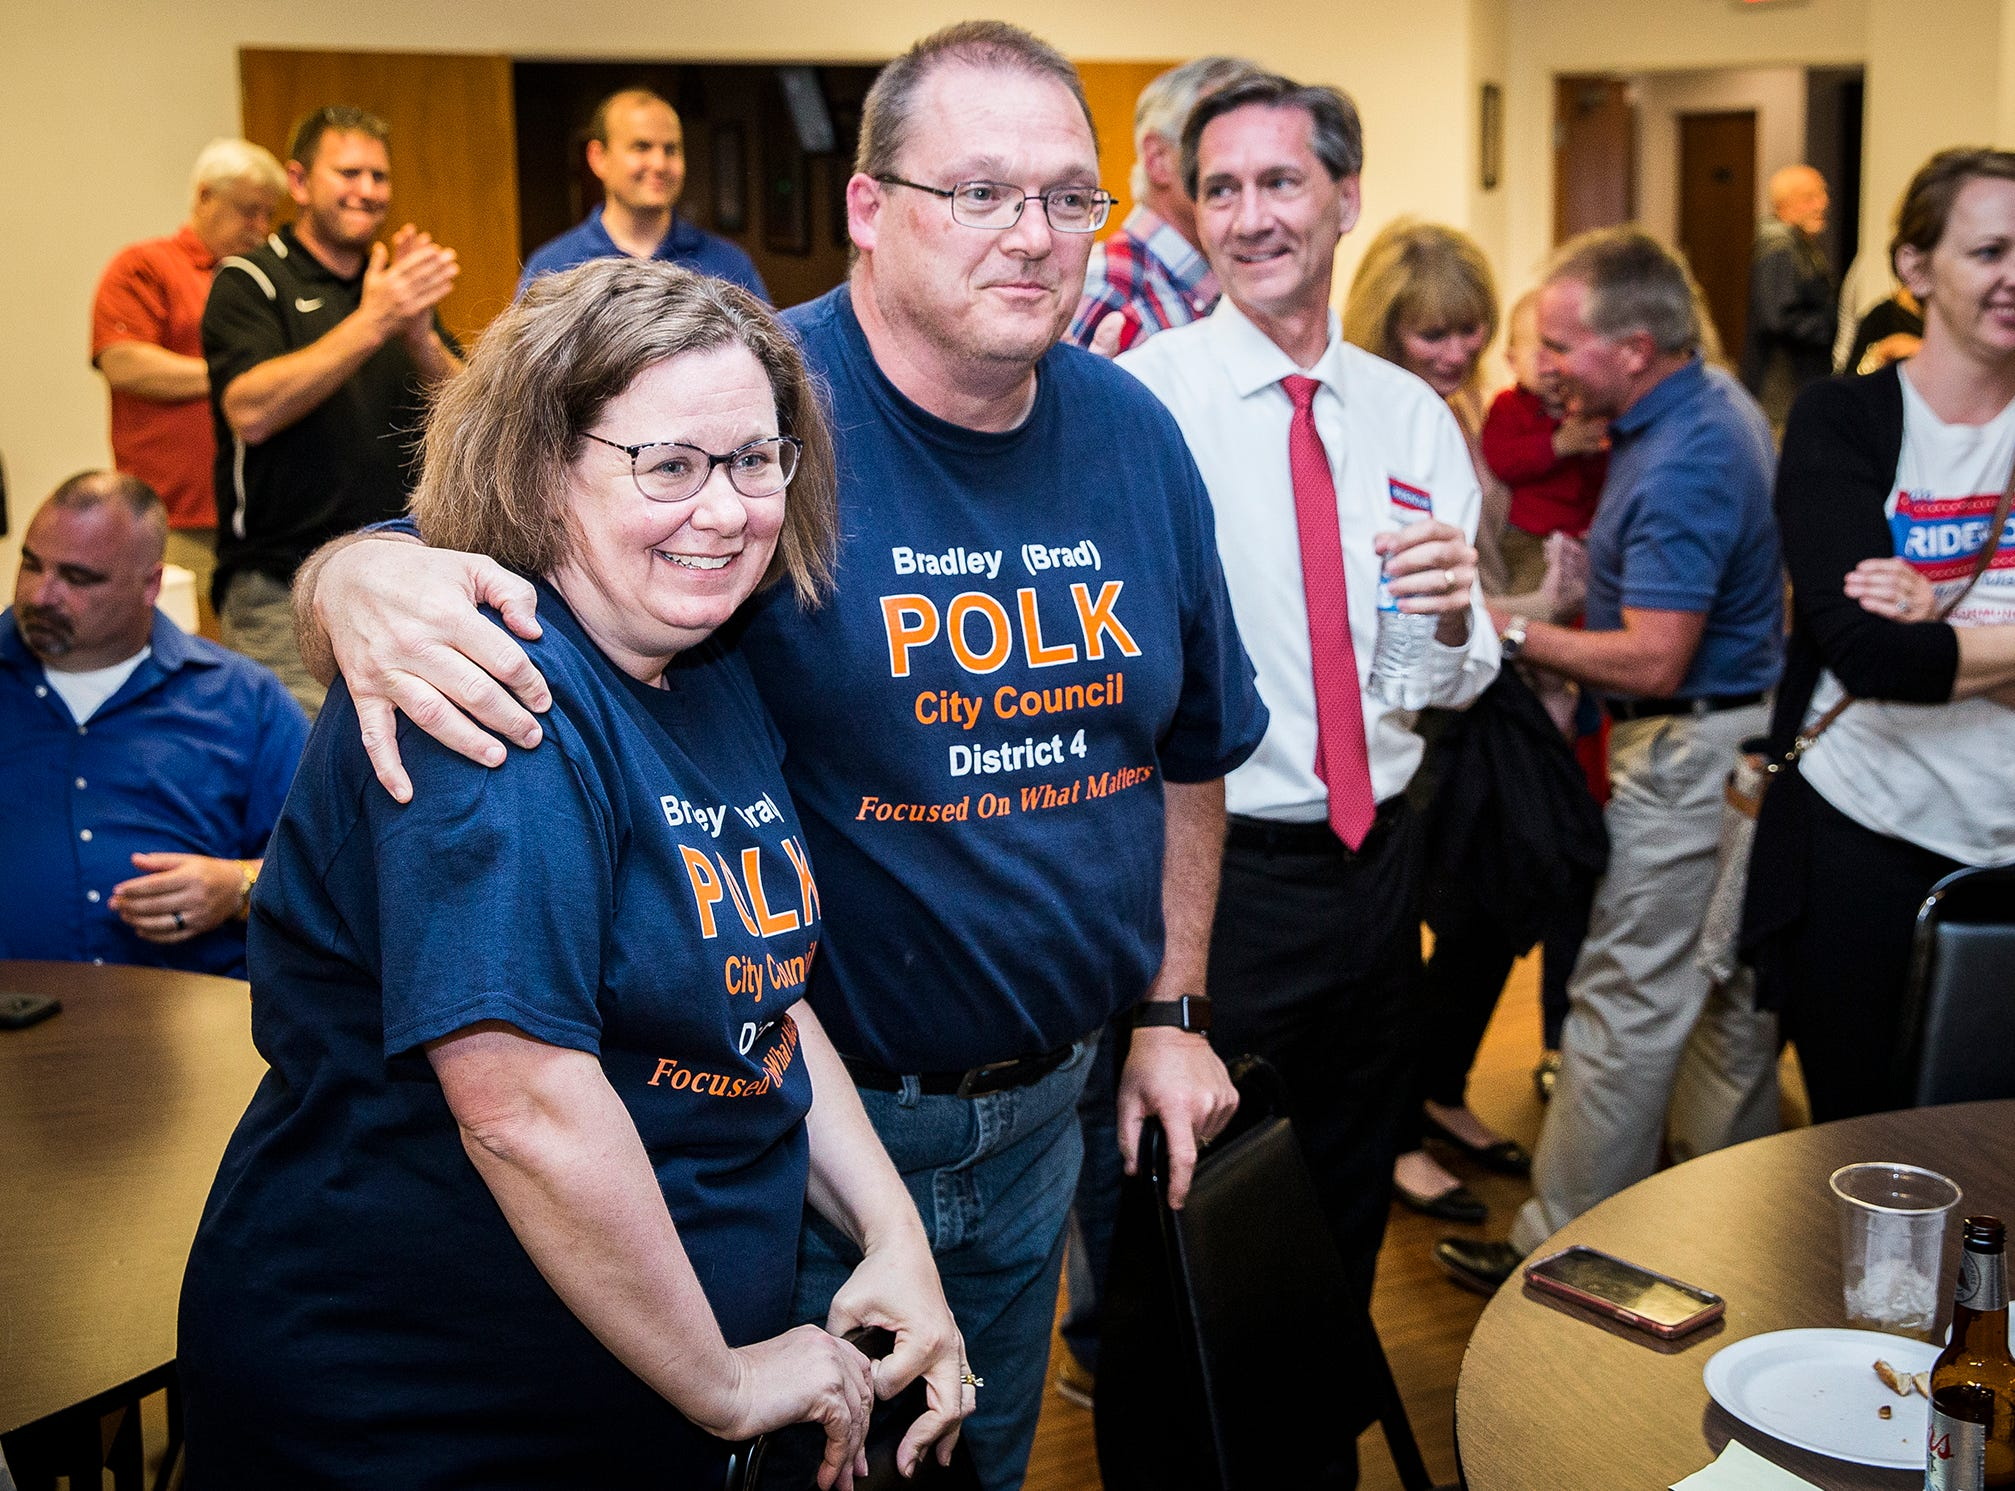 Republican city council nominee Bradley Polk celebrates with supporters at the Knights of Columbus Tuesday night.